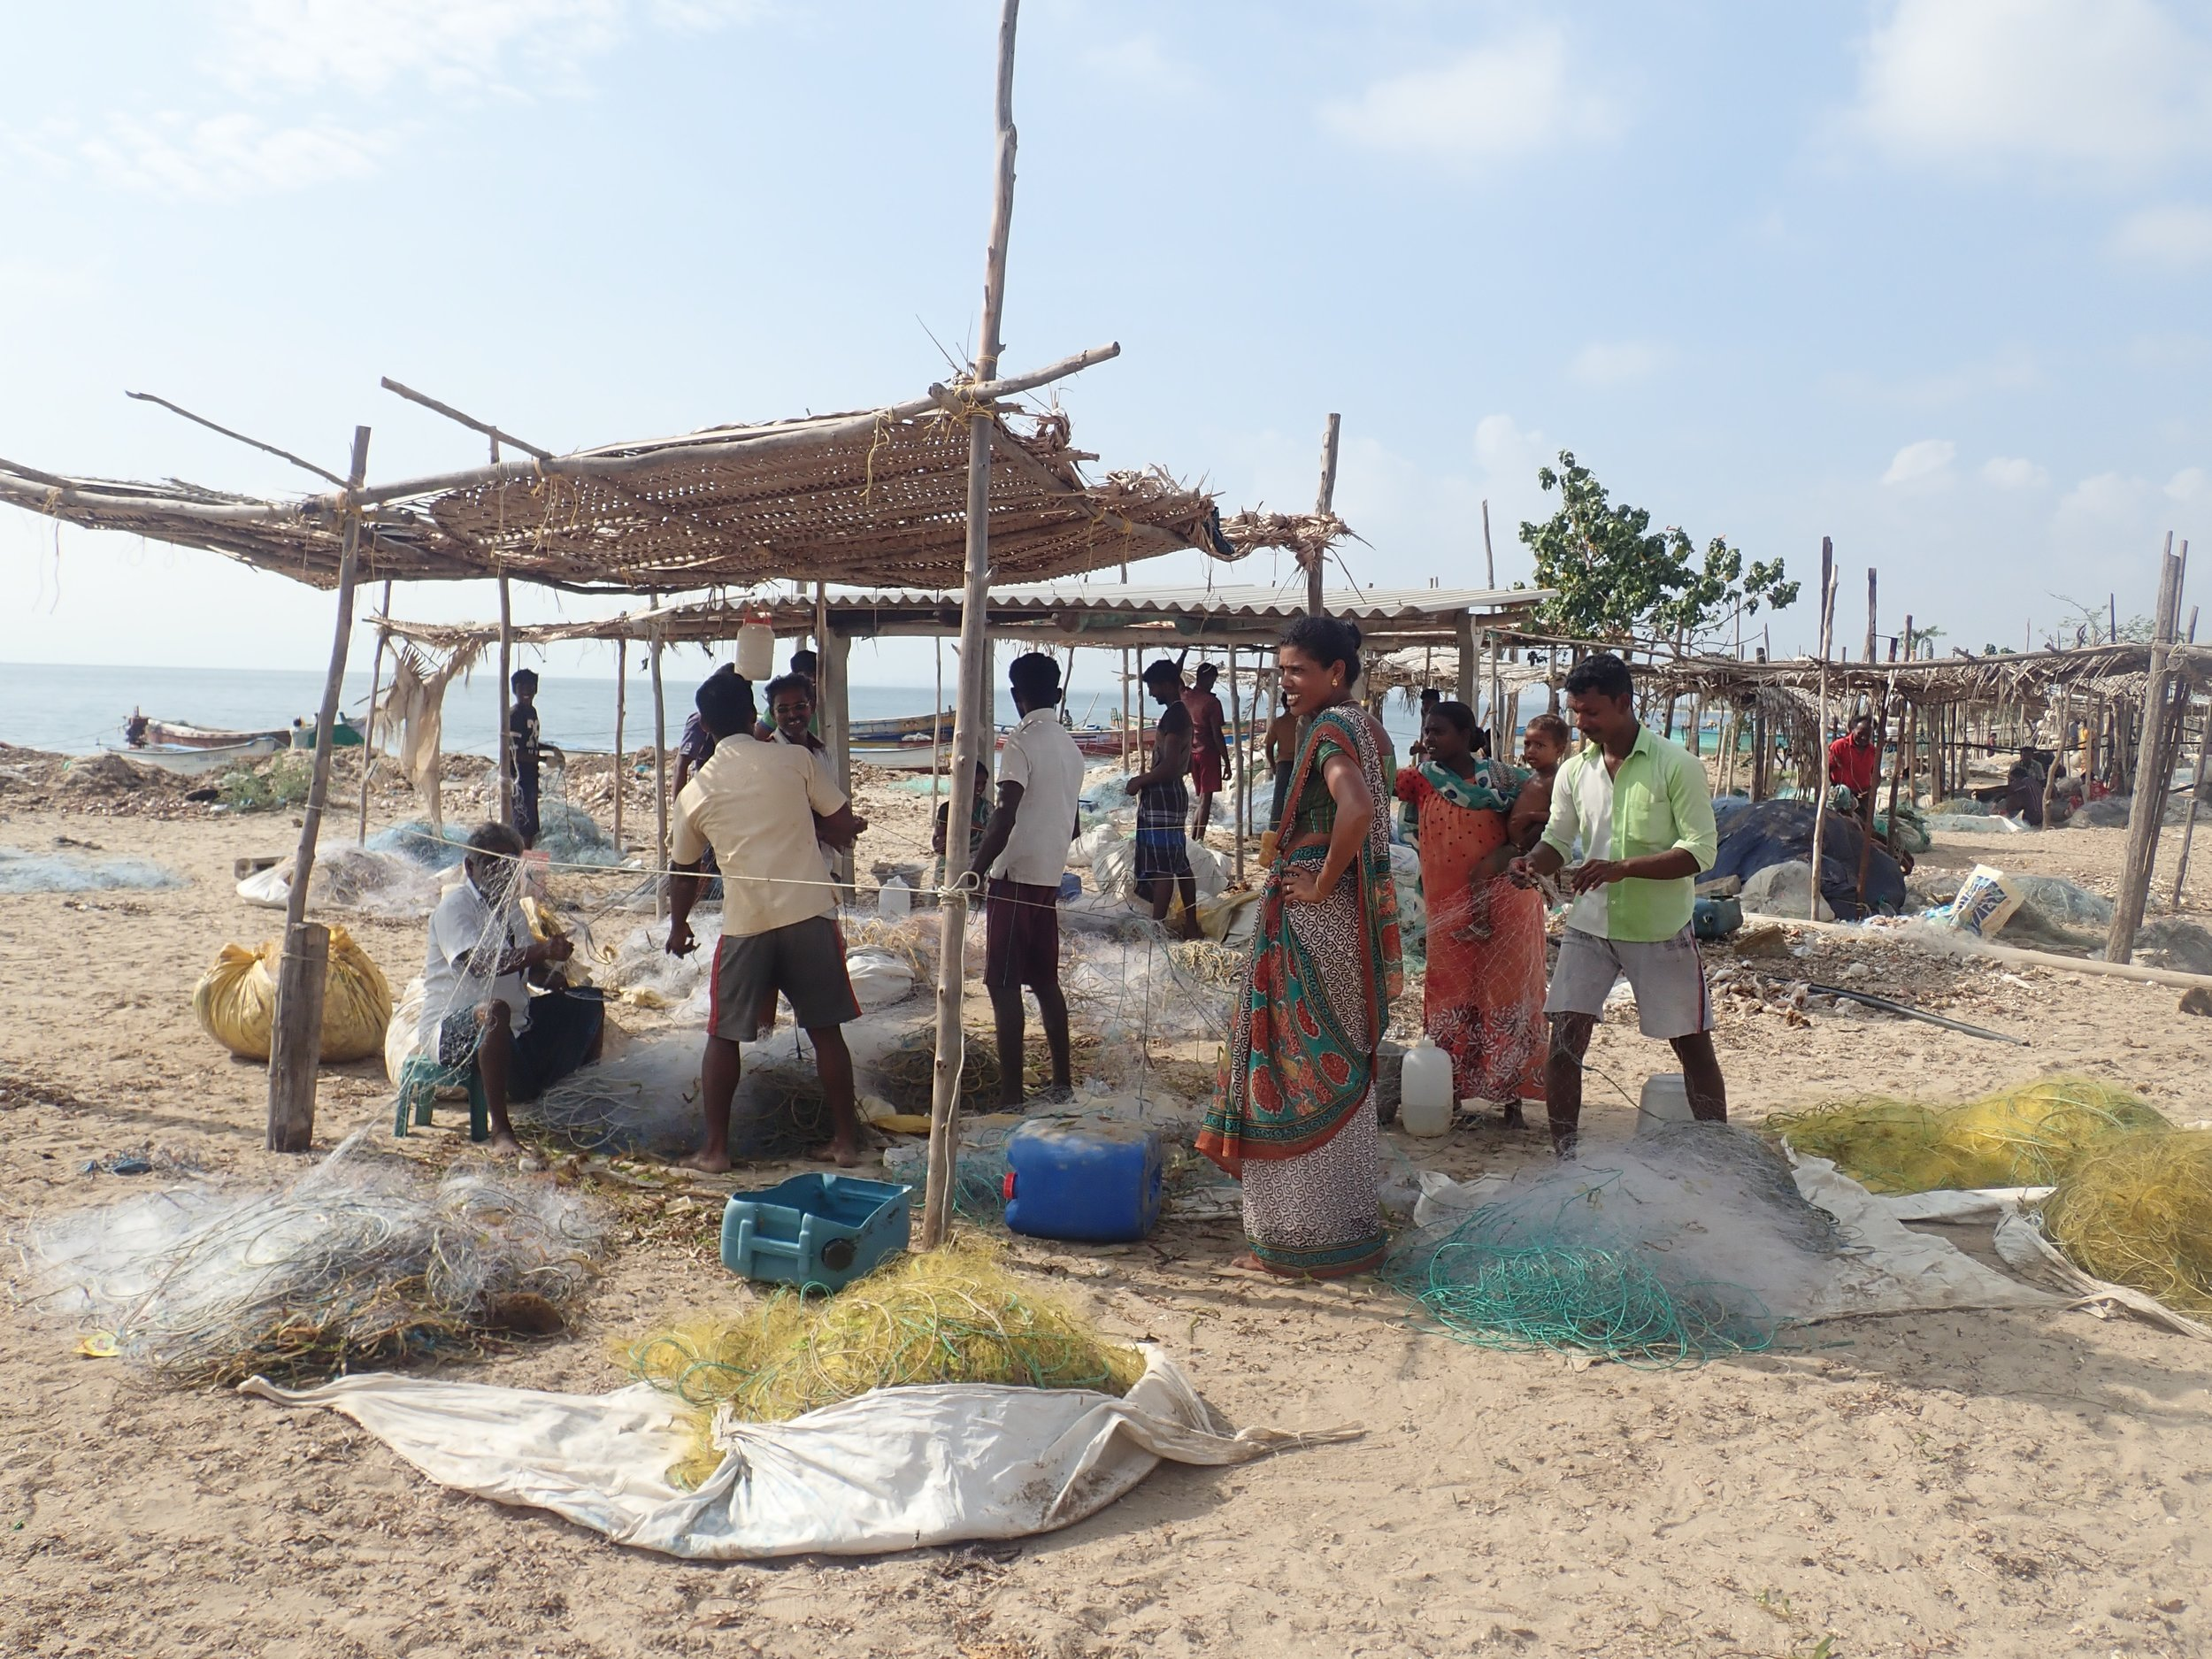 Crab gillnet fishers extract the catch at Vellapatti (Tuticorin area), India. Photo by Amanda Vincent/Project Seahorse.